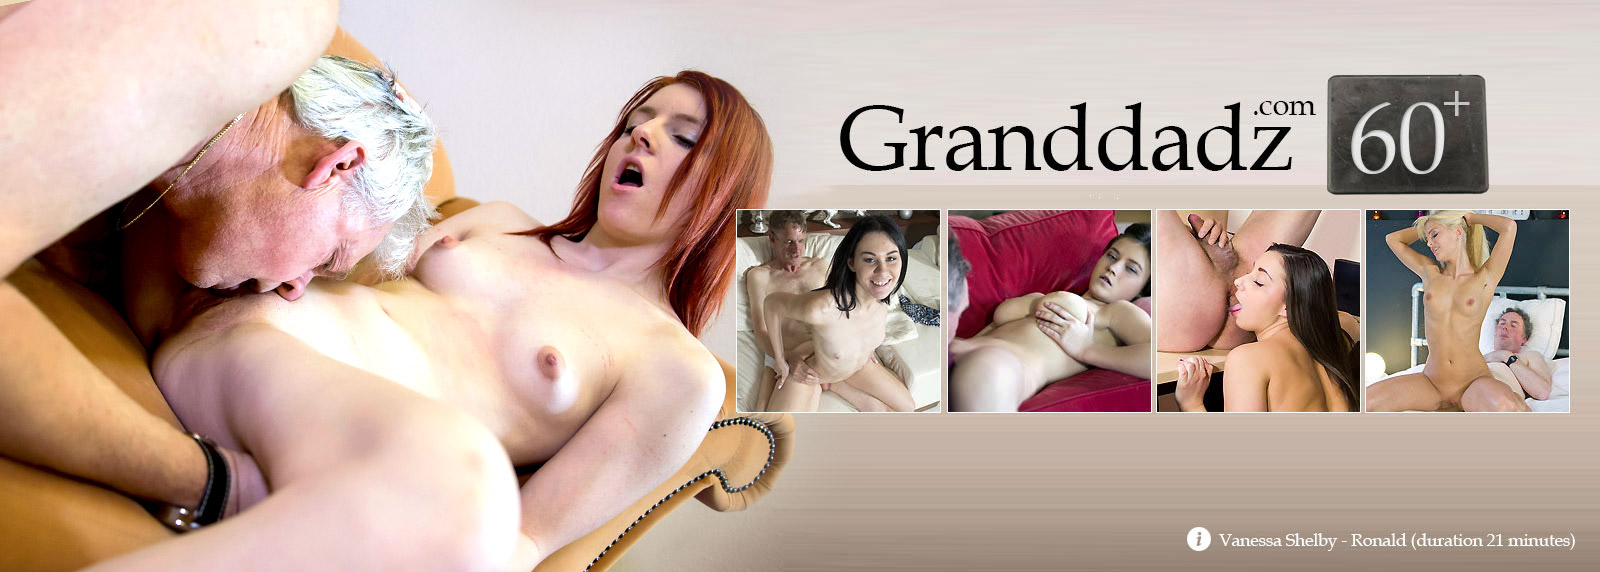 vanessa shelby fucked by granddad